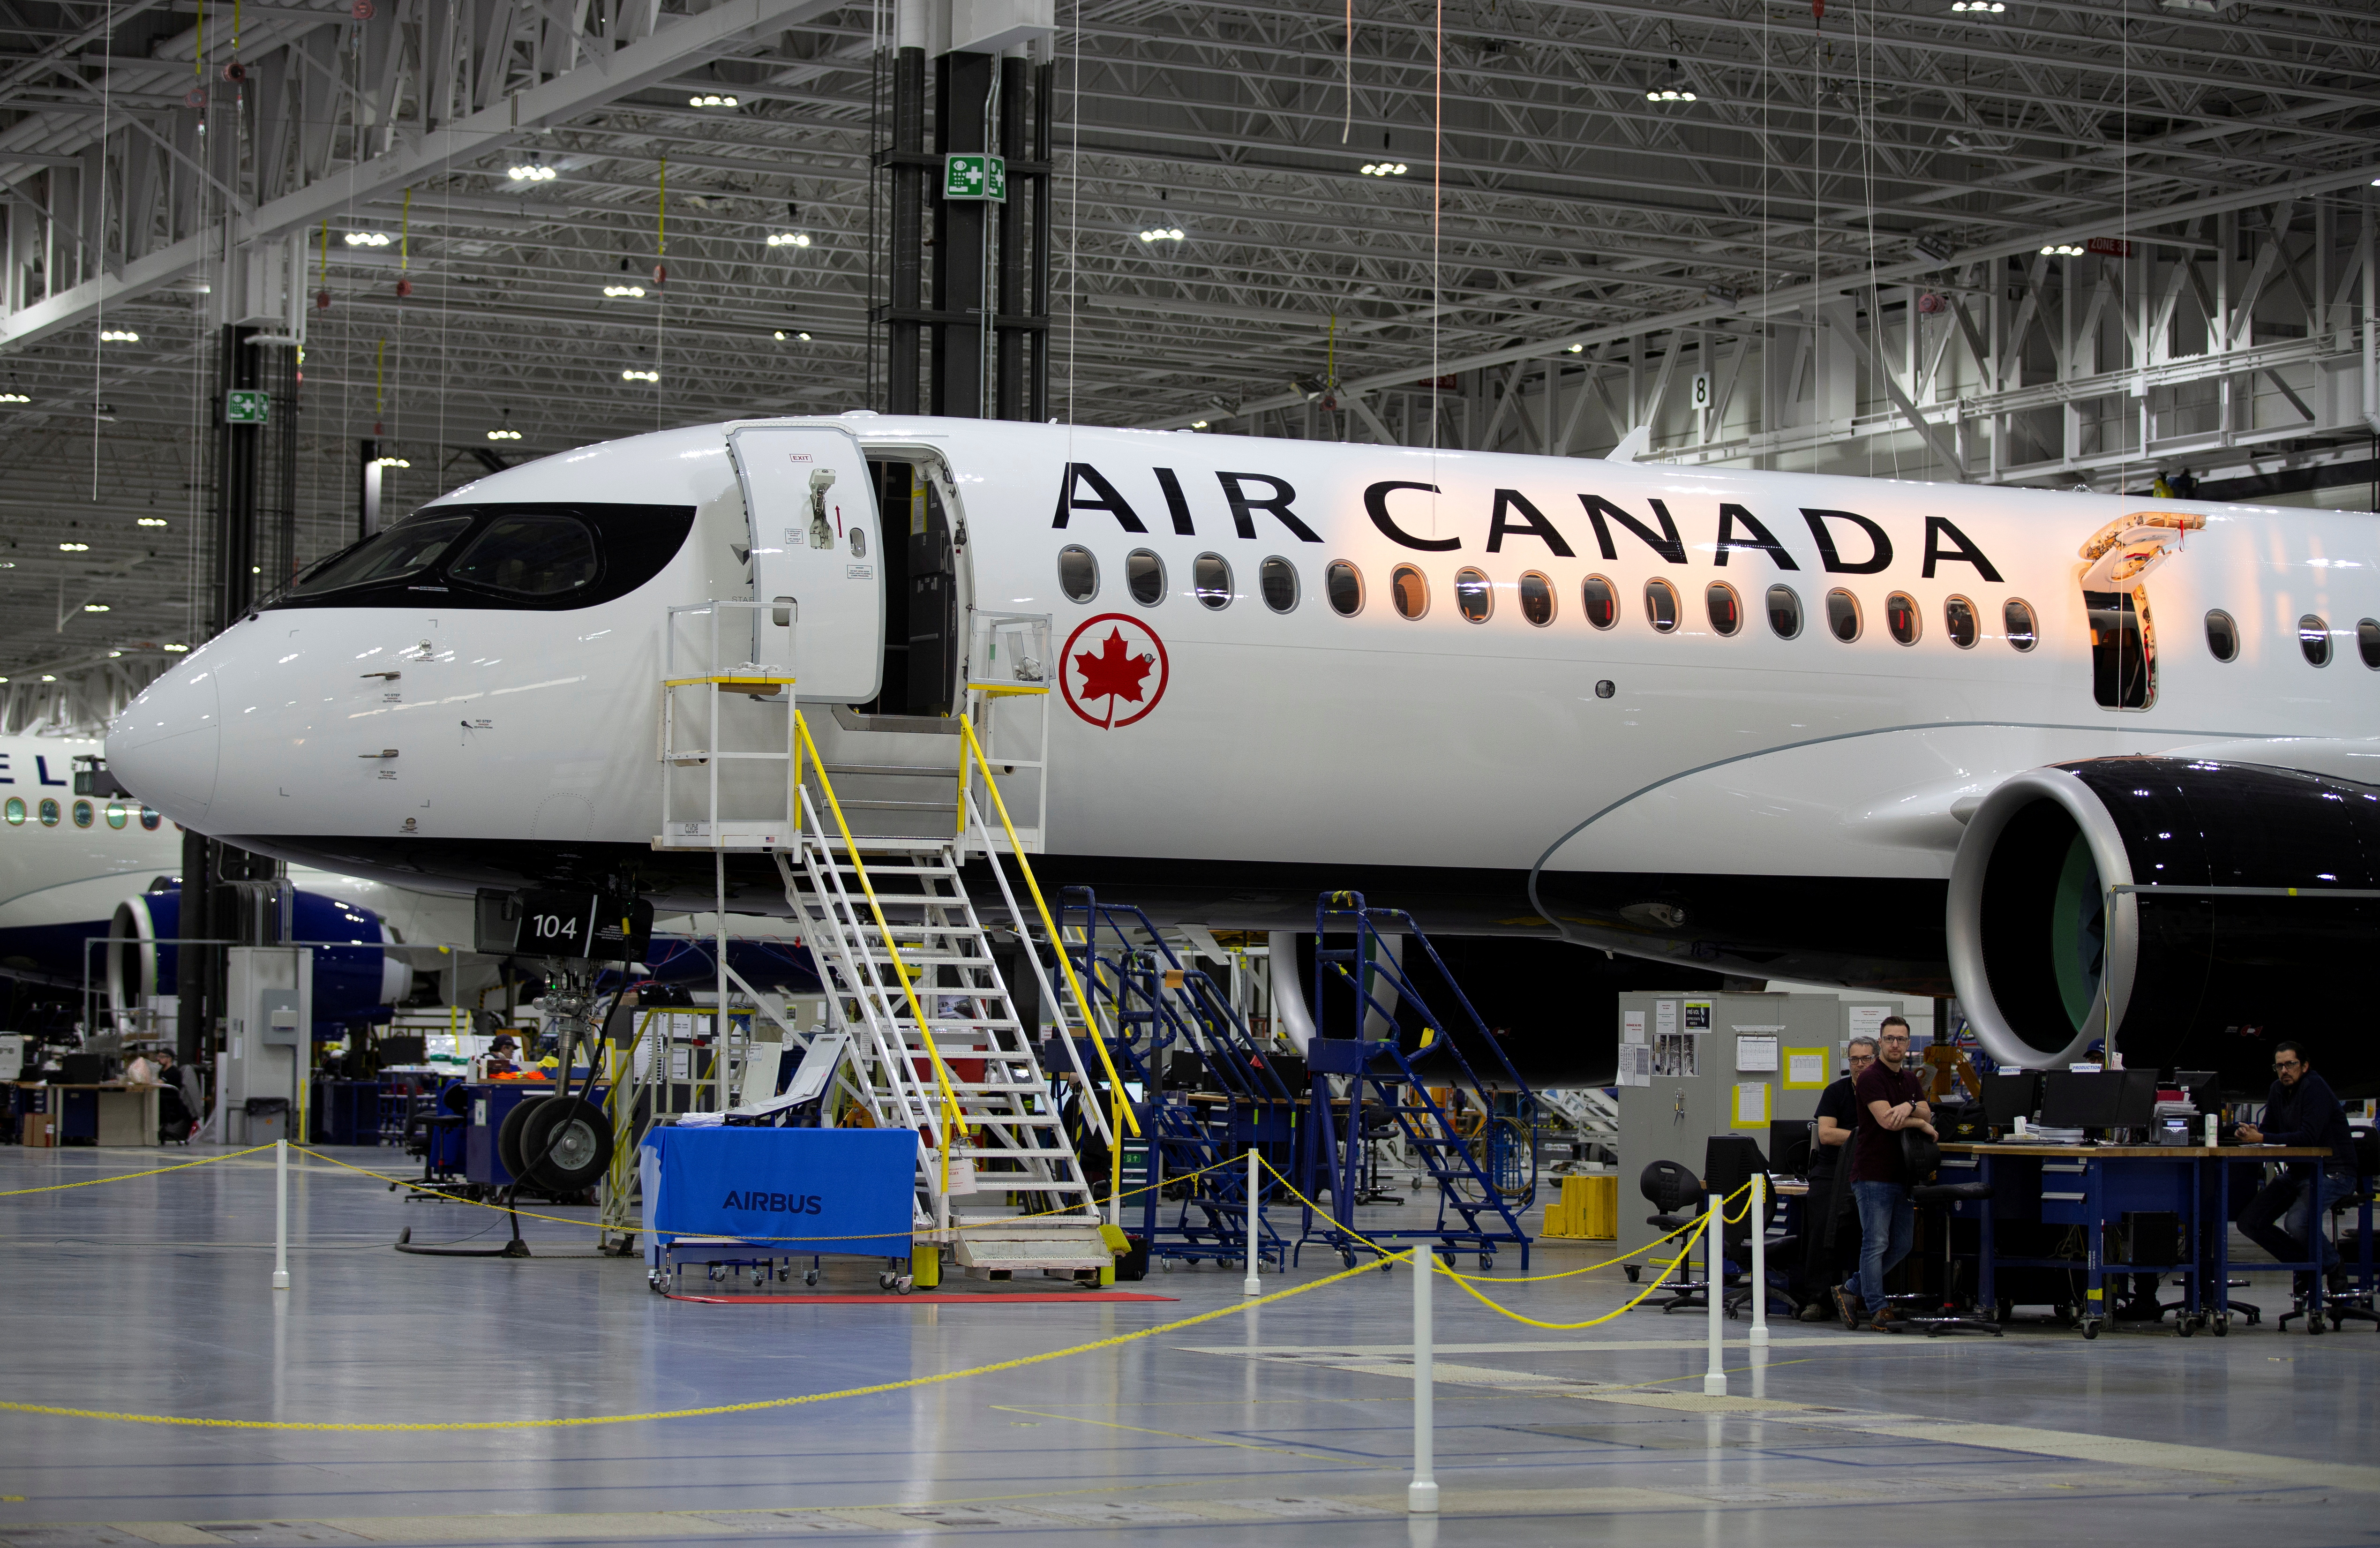 An Airbus A220-300 is seen at the Airbus facility in Mirabel, Quebec, Canada February 20, 2020.  REUTERS/Christinne Muschi